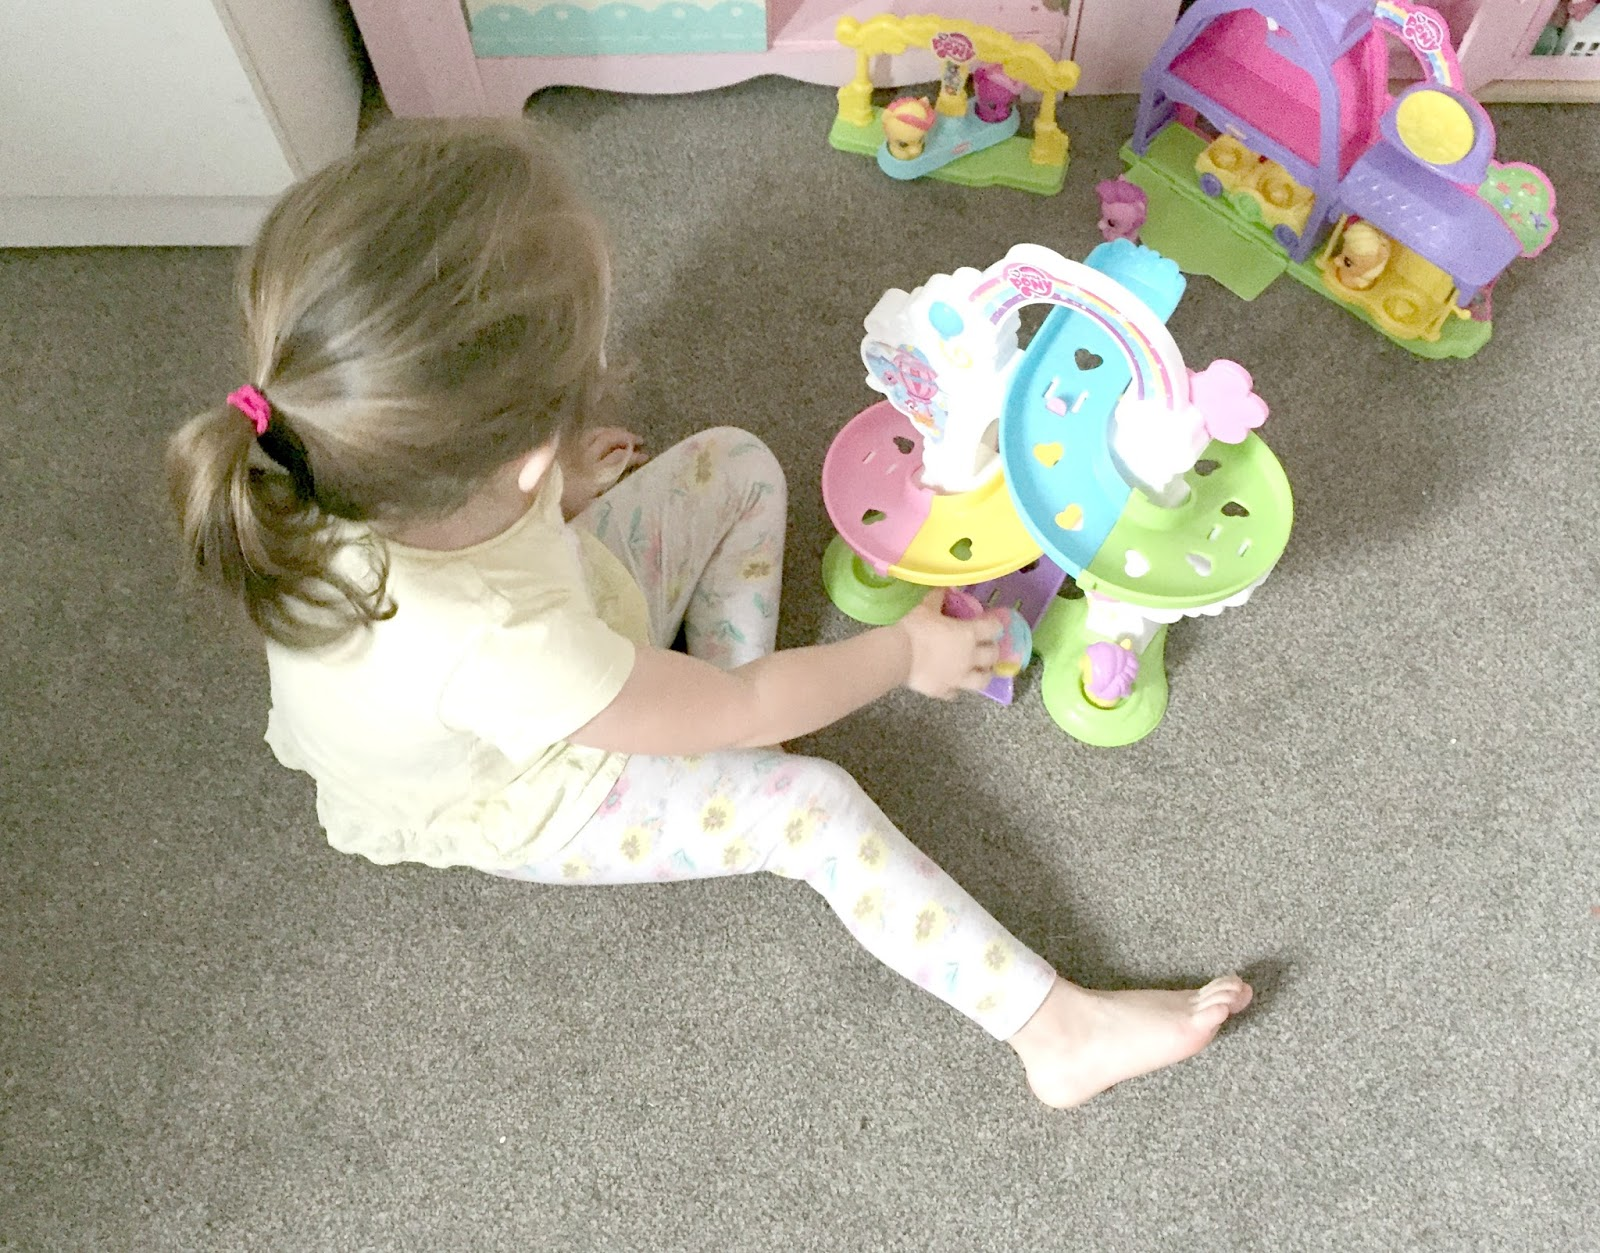 Newcastle Family Life PlaySkool My Little Pony Toddler Toys Review